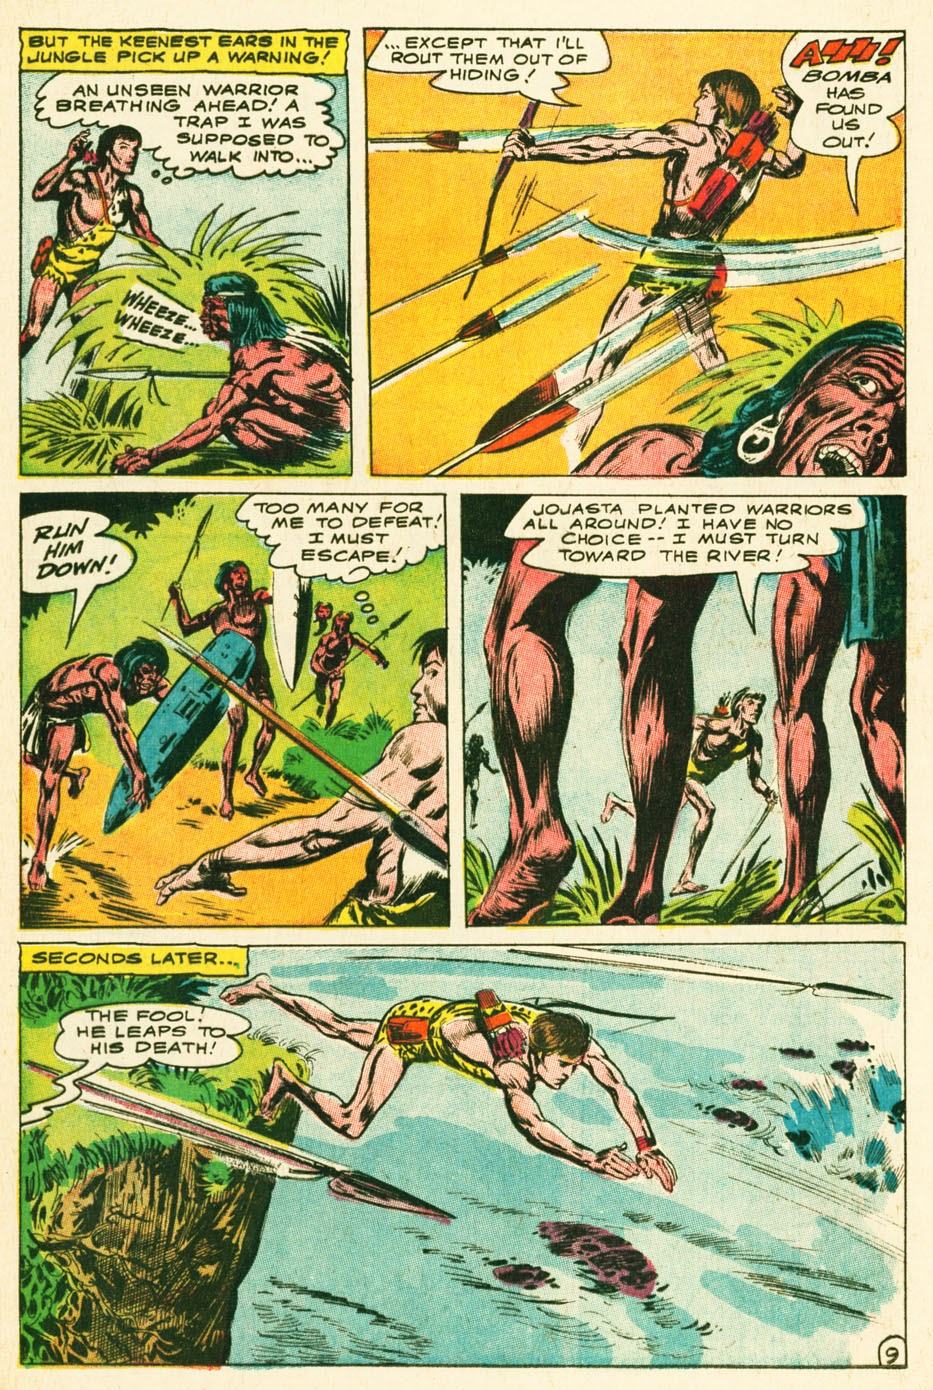 Bomba, The Jungle Boy issue 1 - Page 10